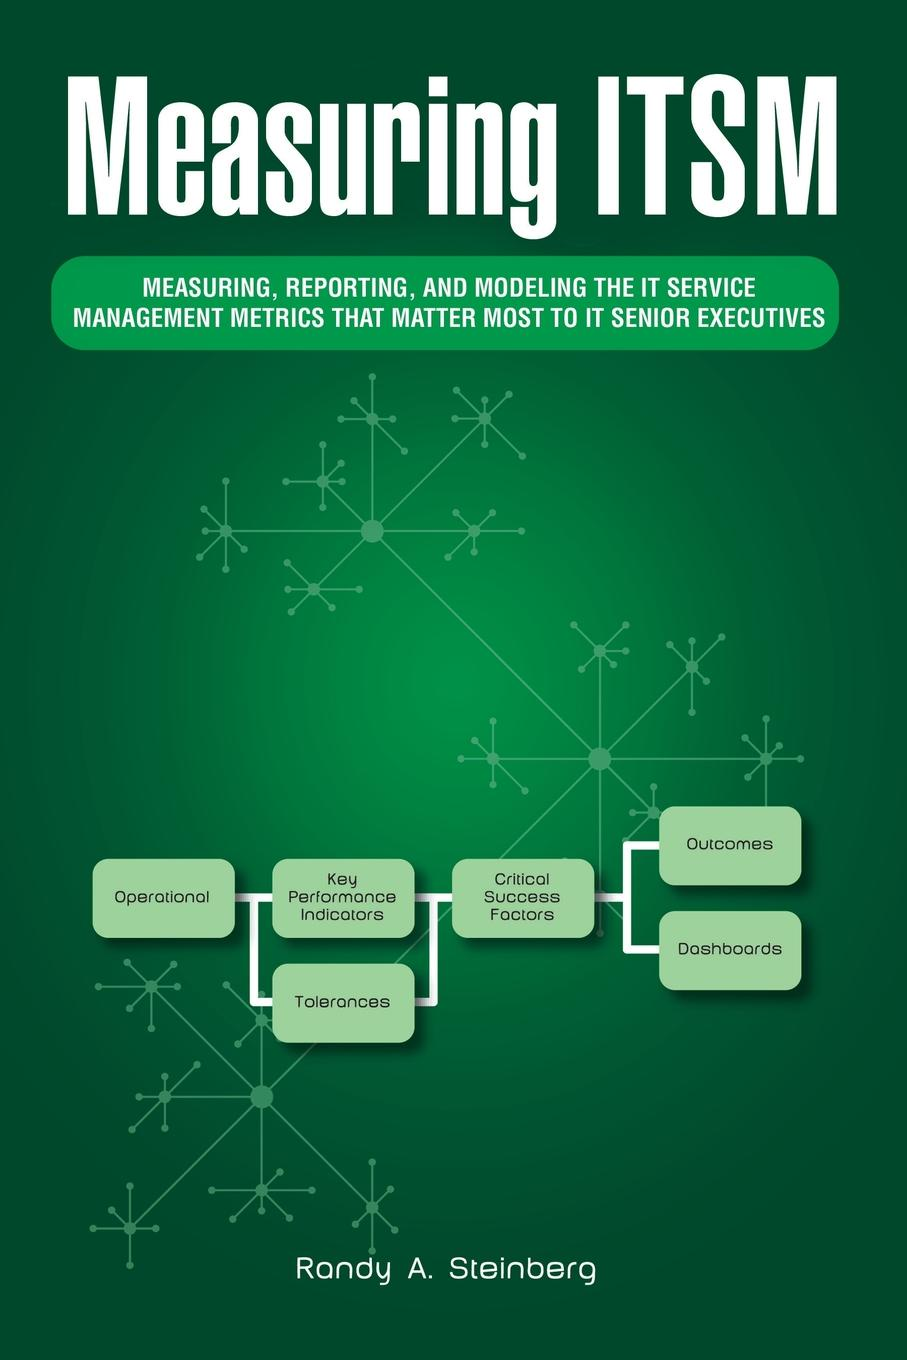 Randy a. Steinberg Measuring Itsm. Measuring, Reporting, and Modeling the It Service Management Metrics That Matter Most to It Senior Executives service learning pedagogy how does it measure up